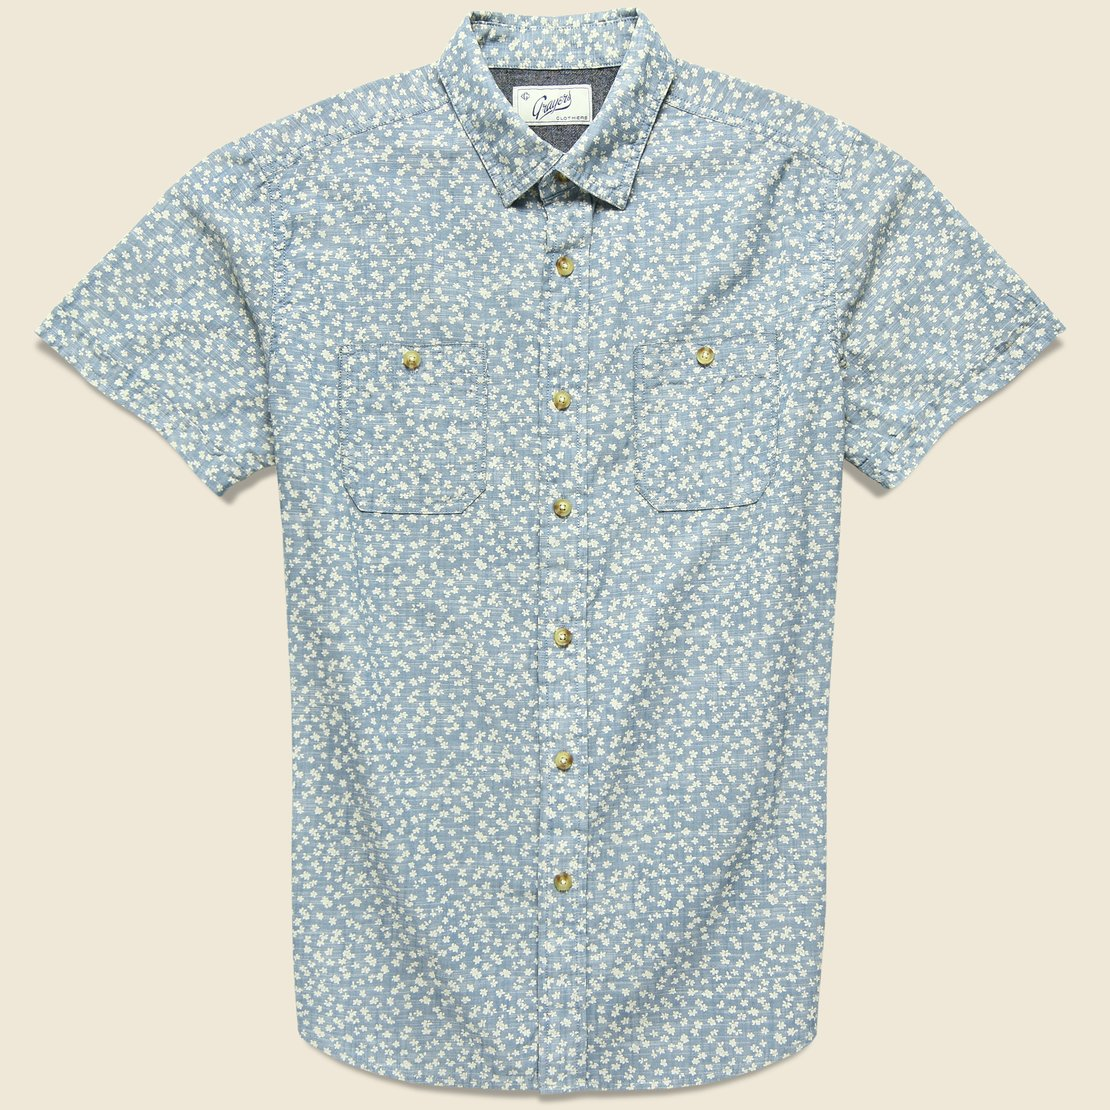 Grayers Drayton Printed Chambray Shirt - Aegean Blue